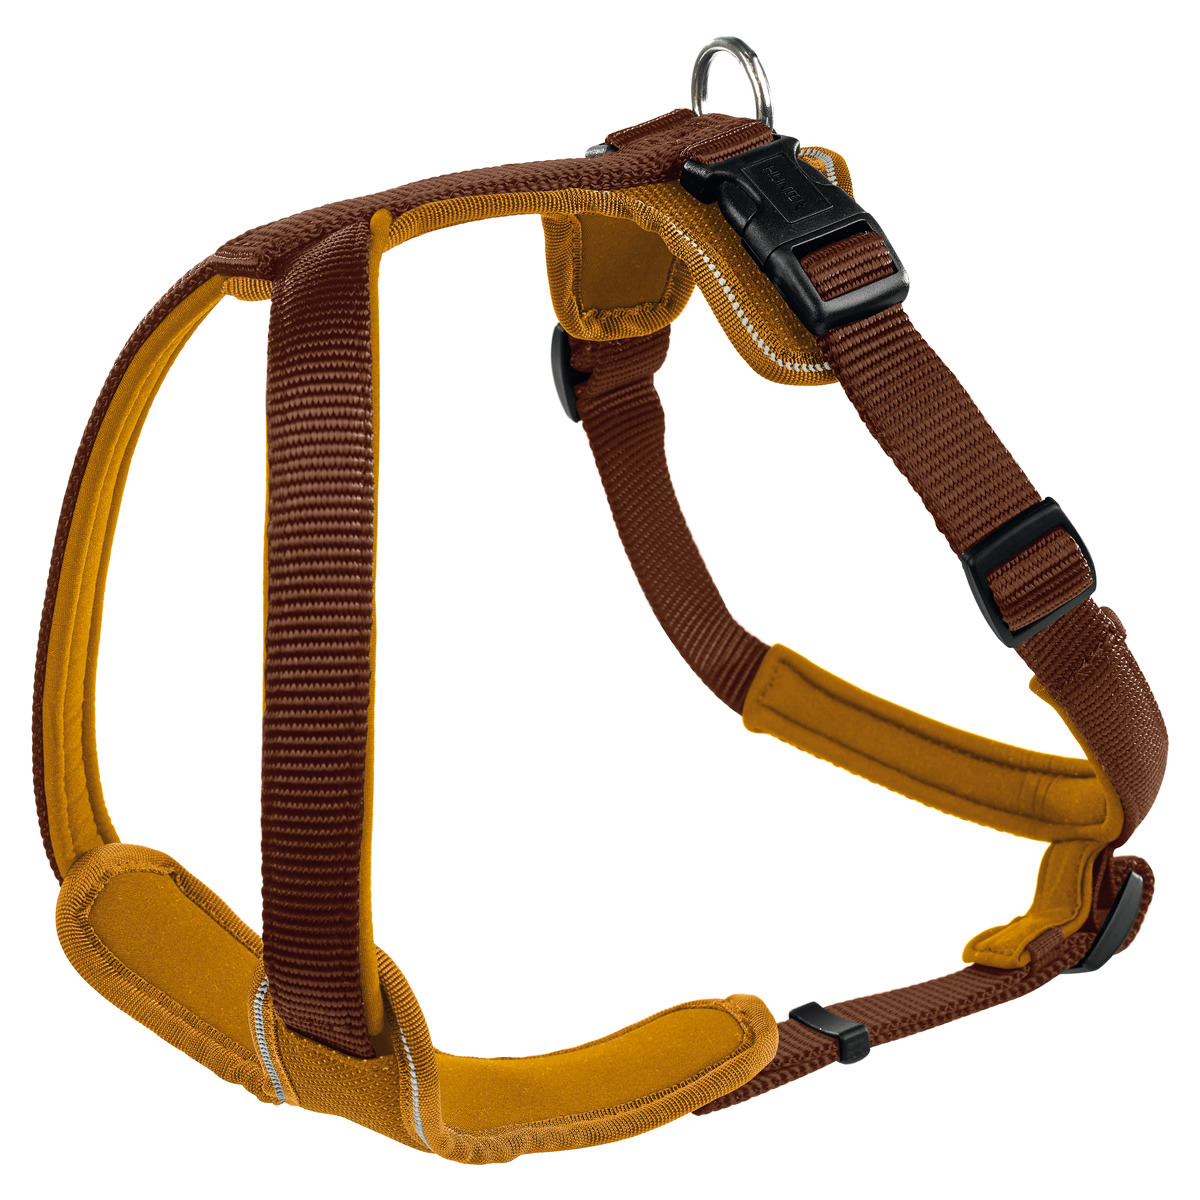 Hunter Geschirr Neopren brauncaramel ~ Geschirr Hunter